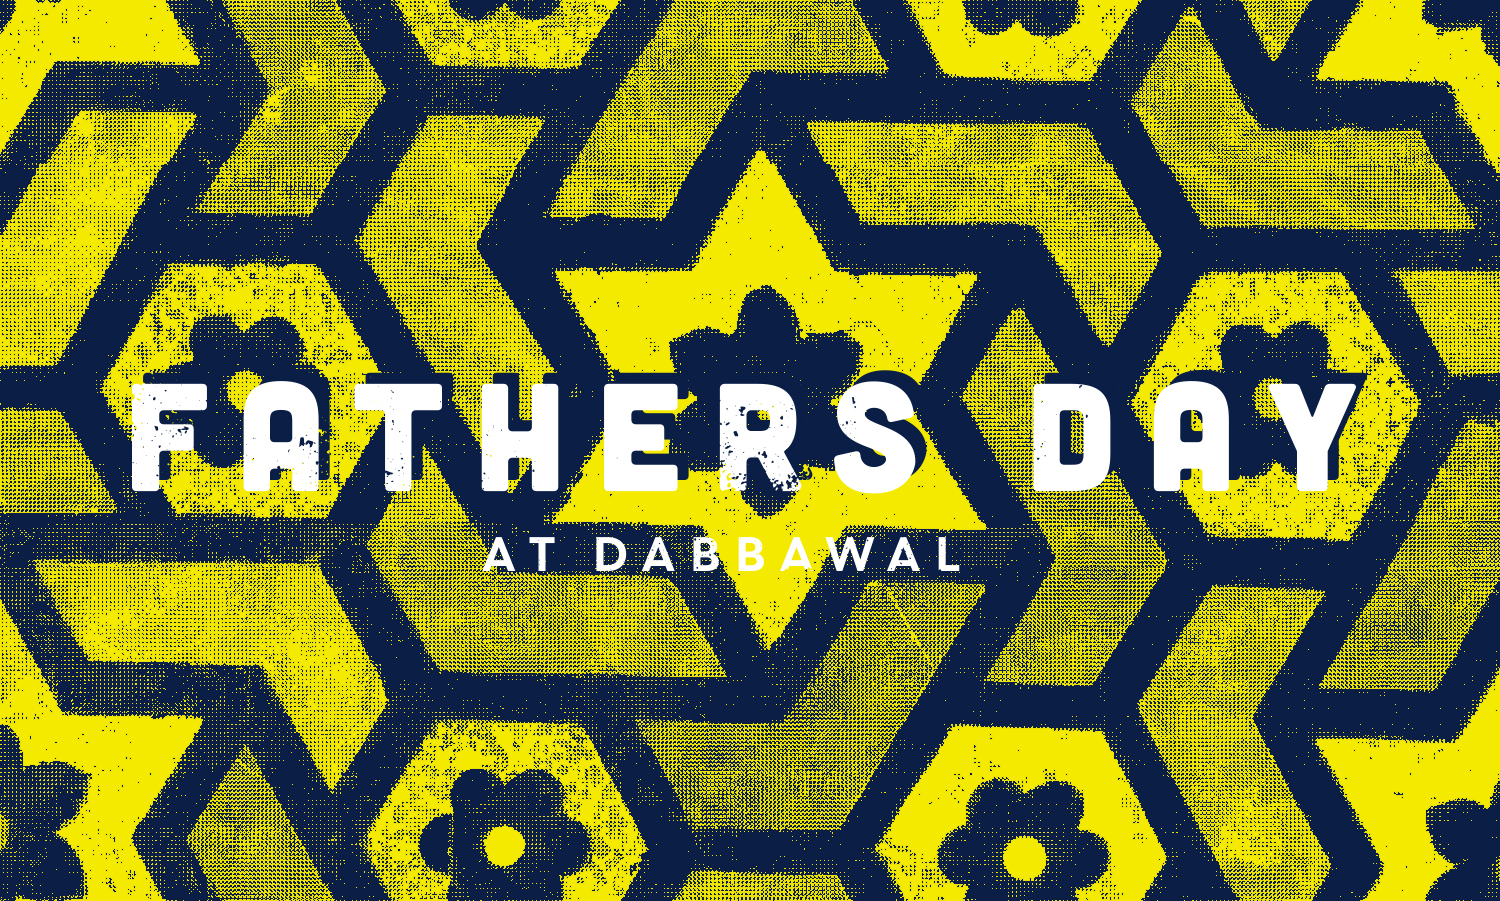 dabbawal-indian-street-food-newcastle-fathers-day